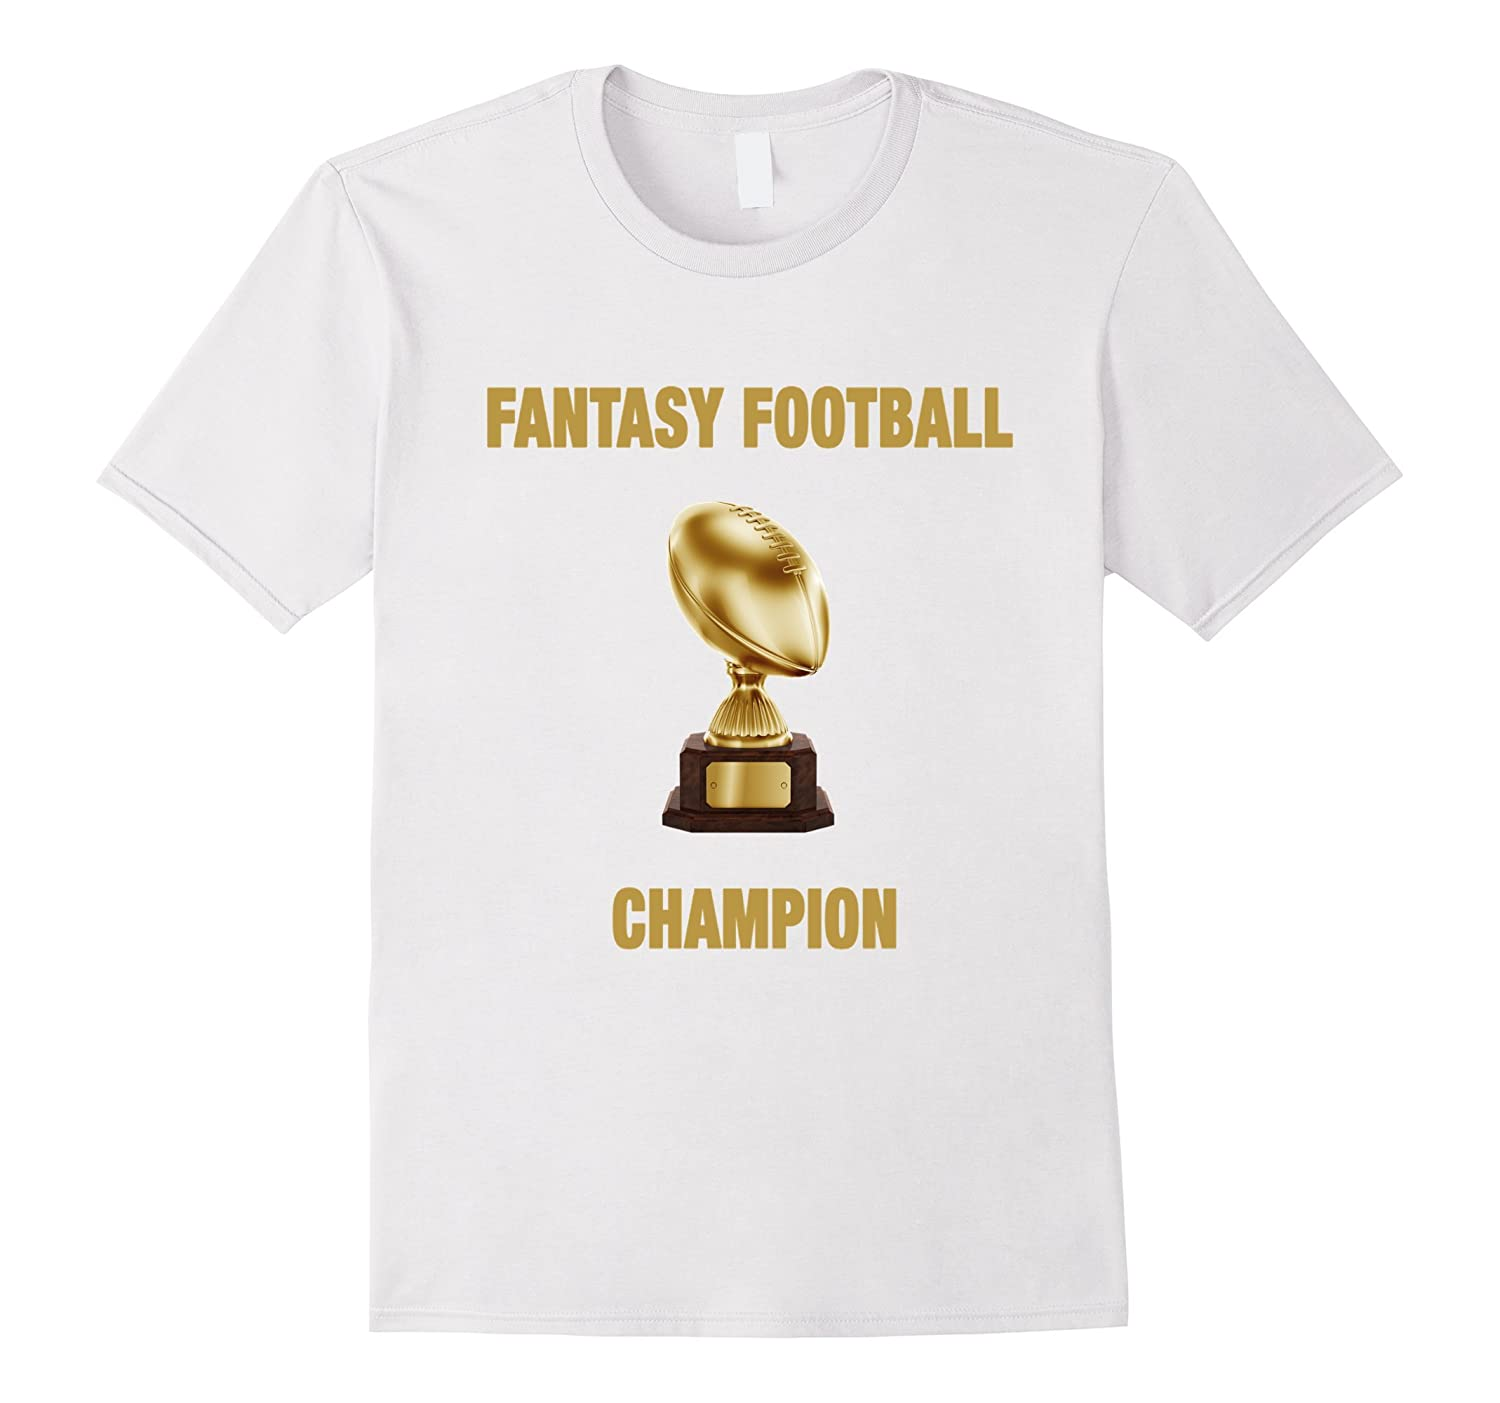 Fantasy Football Champion Ff Tee Shirt Art Artvinatee